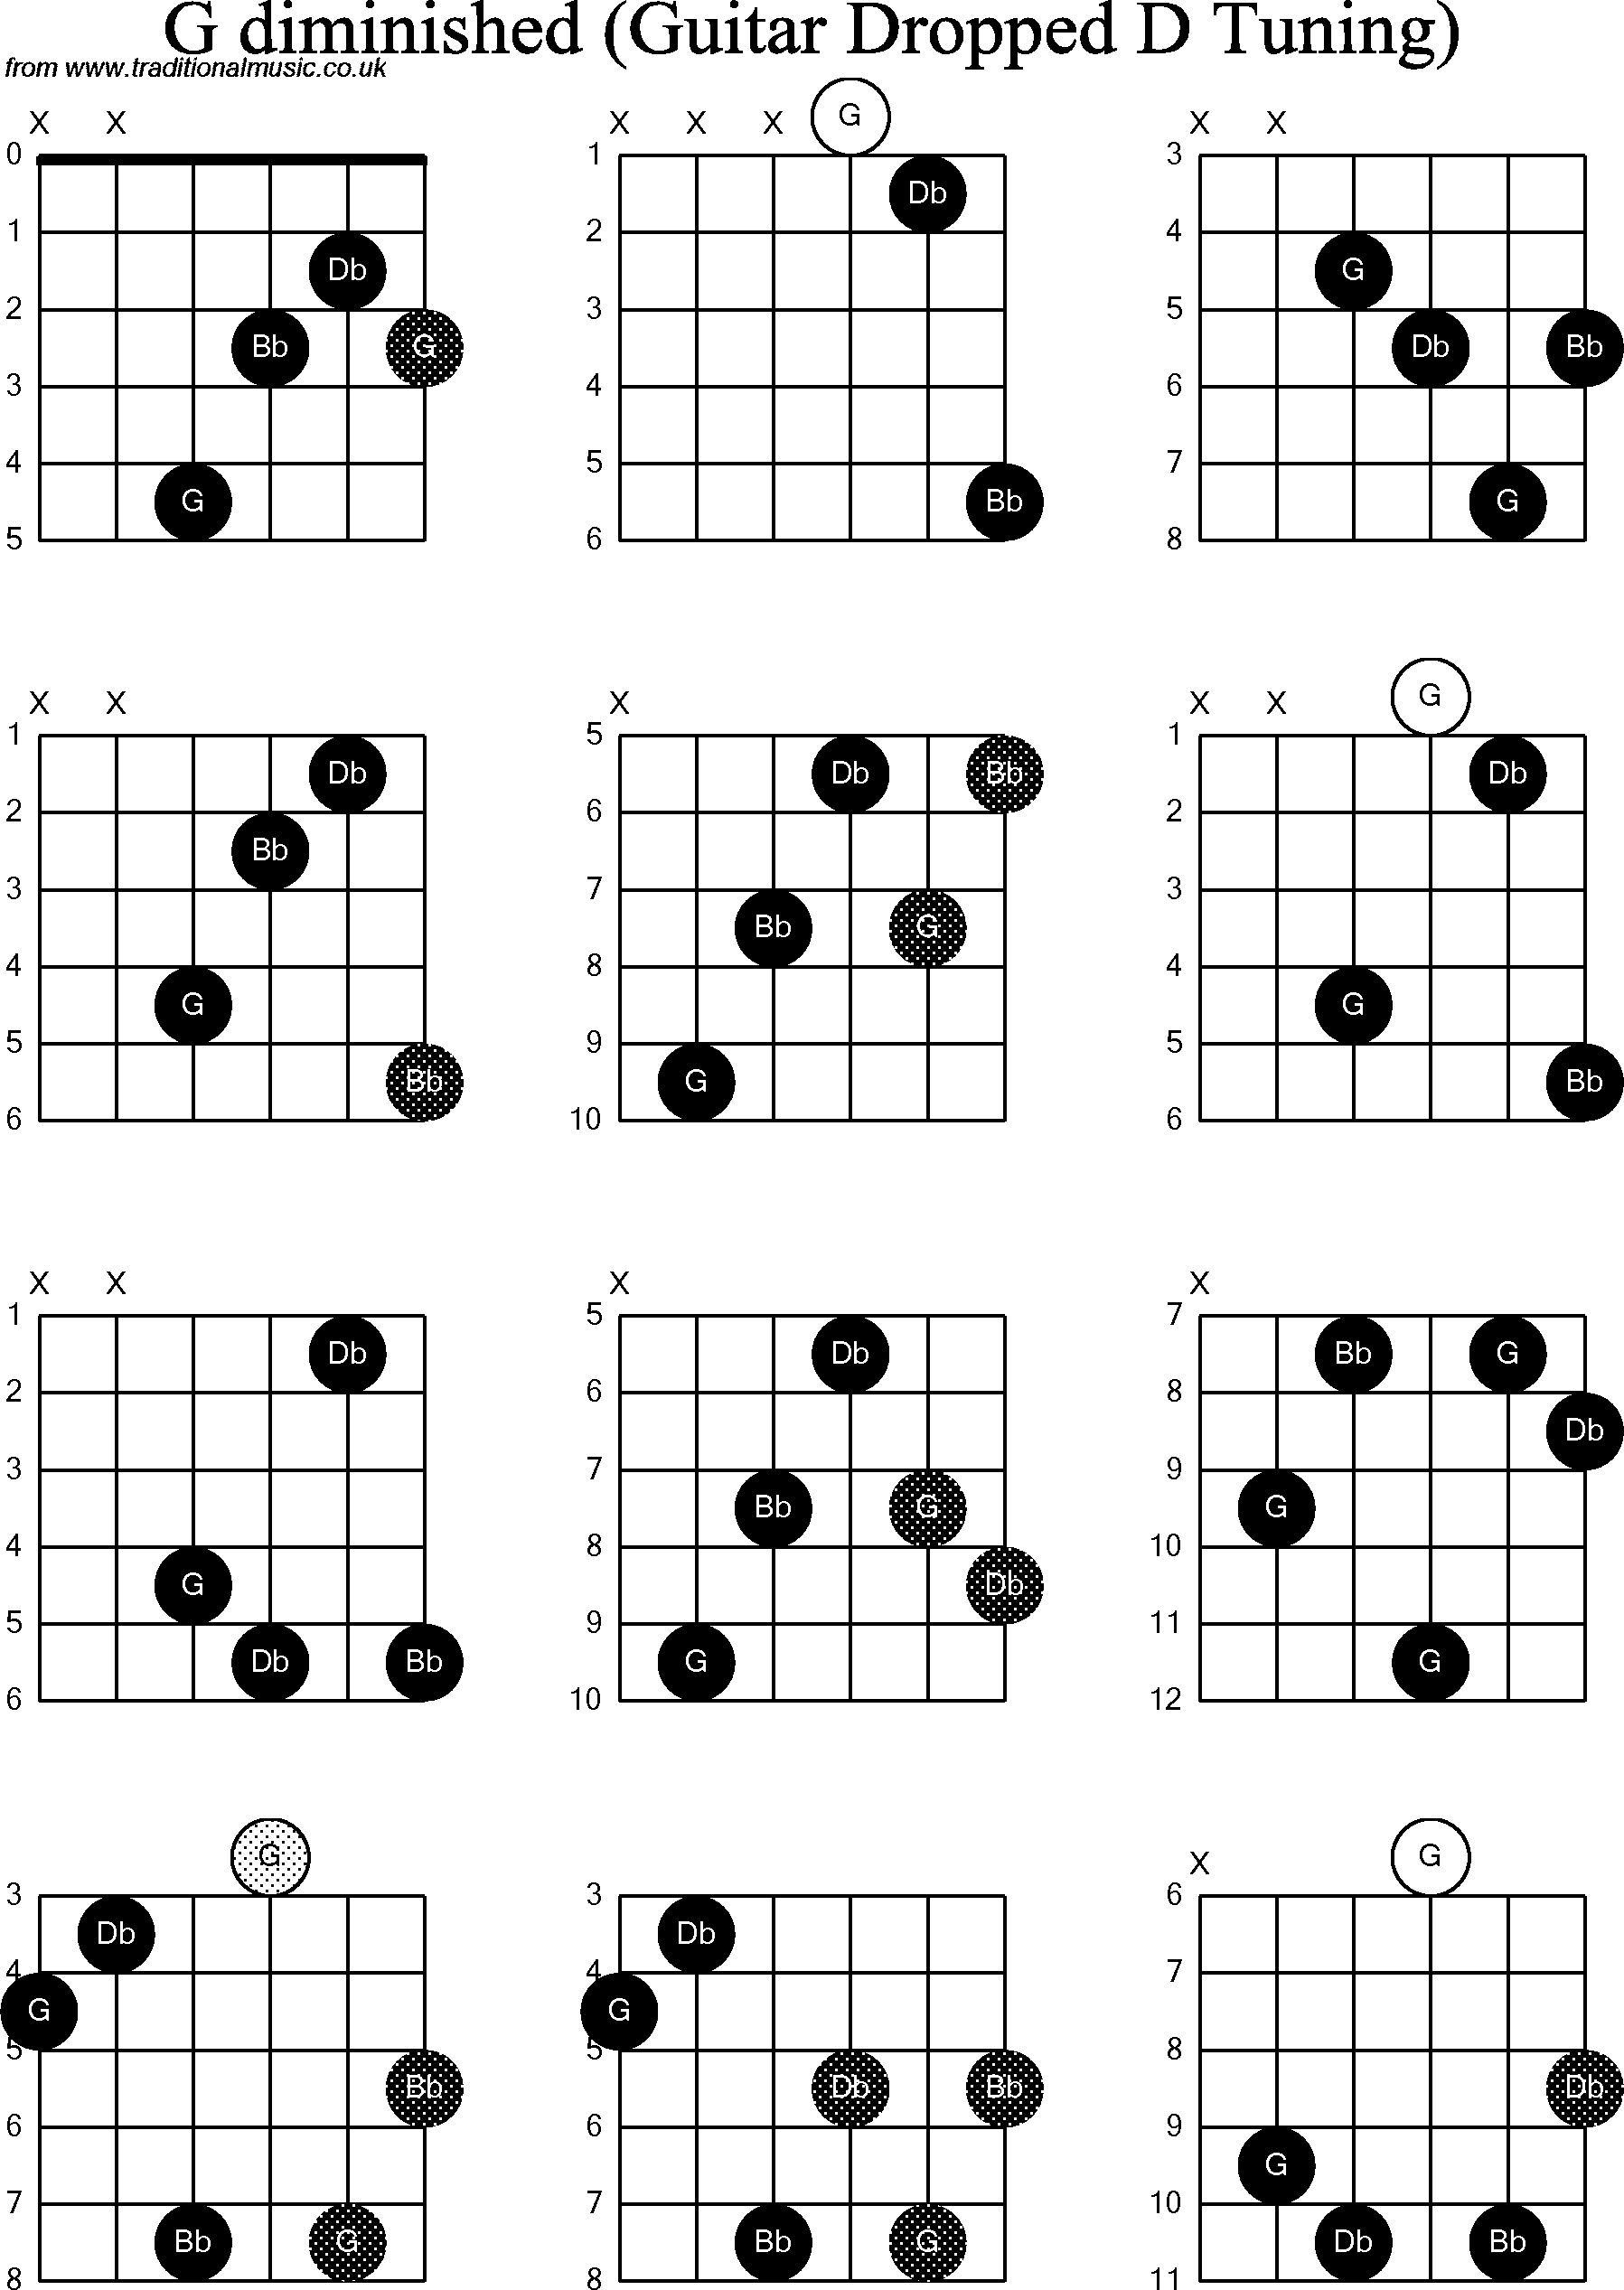 Chord diagrams for dropped d guitardadgbe g diminished chord diagrams for dropped d guitardadgbe g diminished hexwebz Choice Image